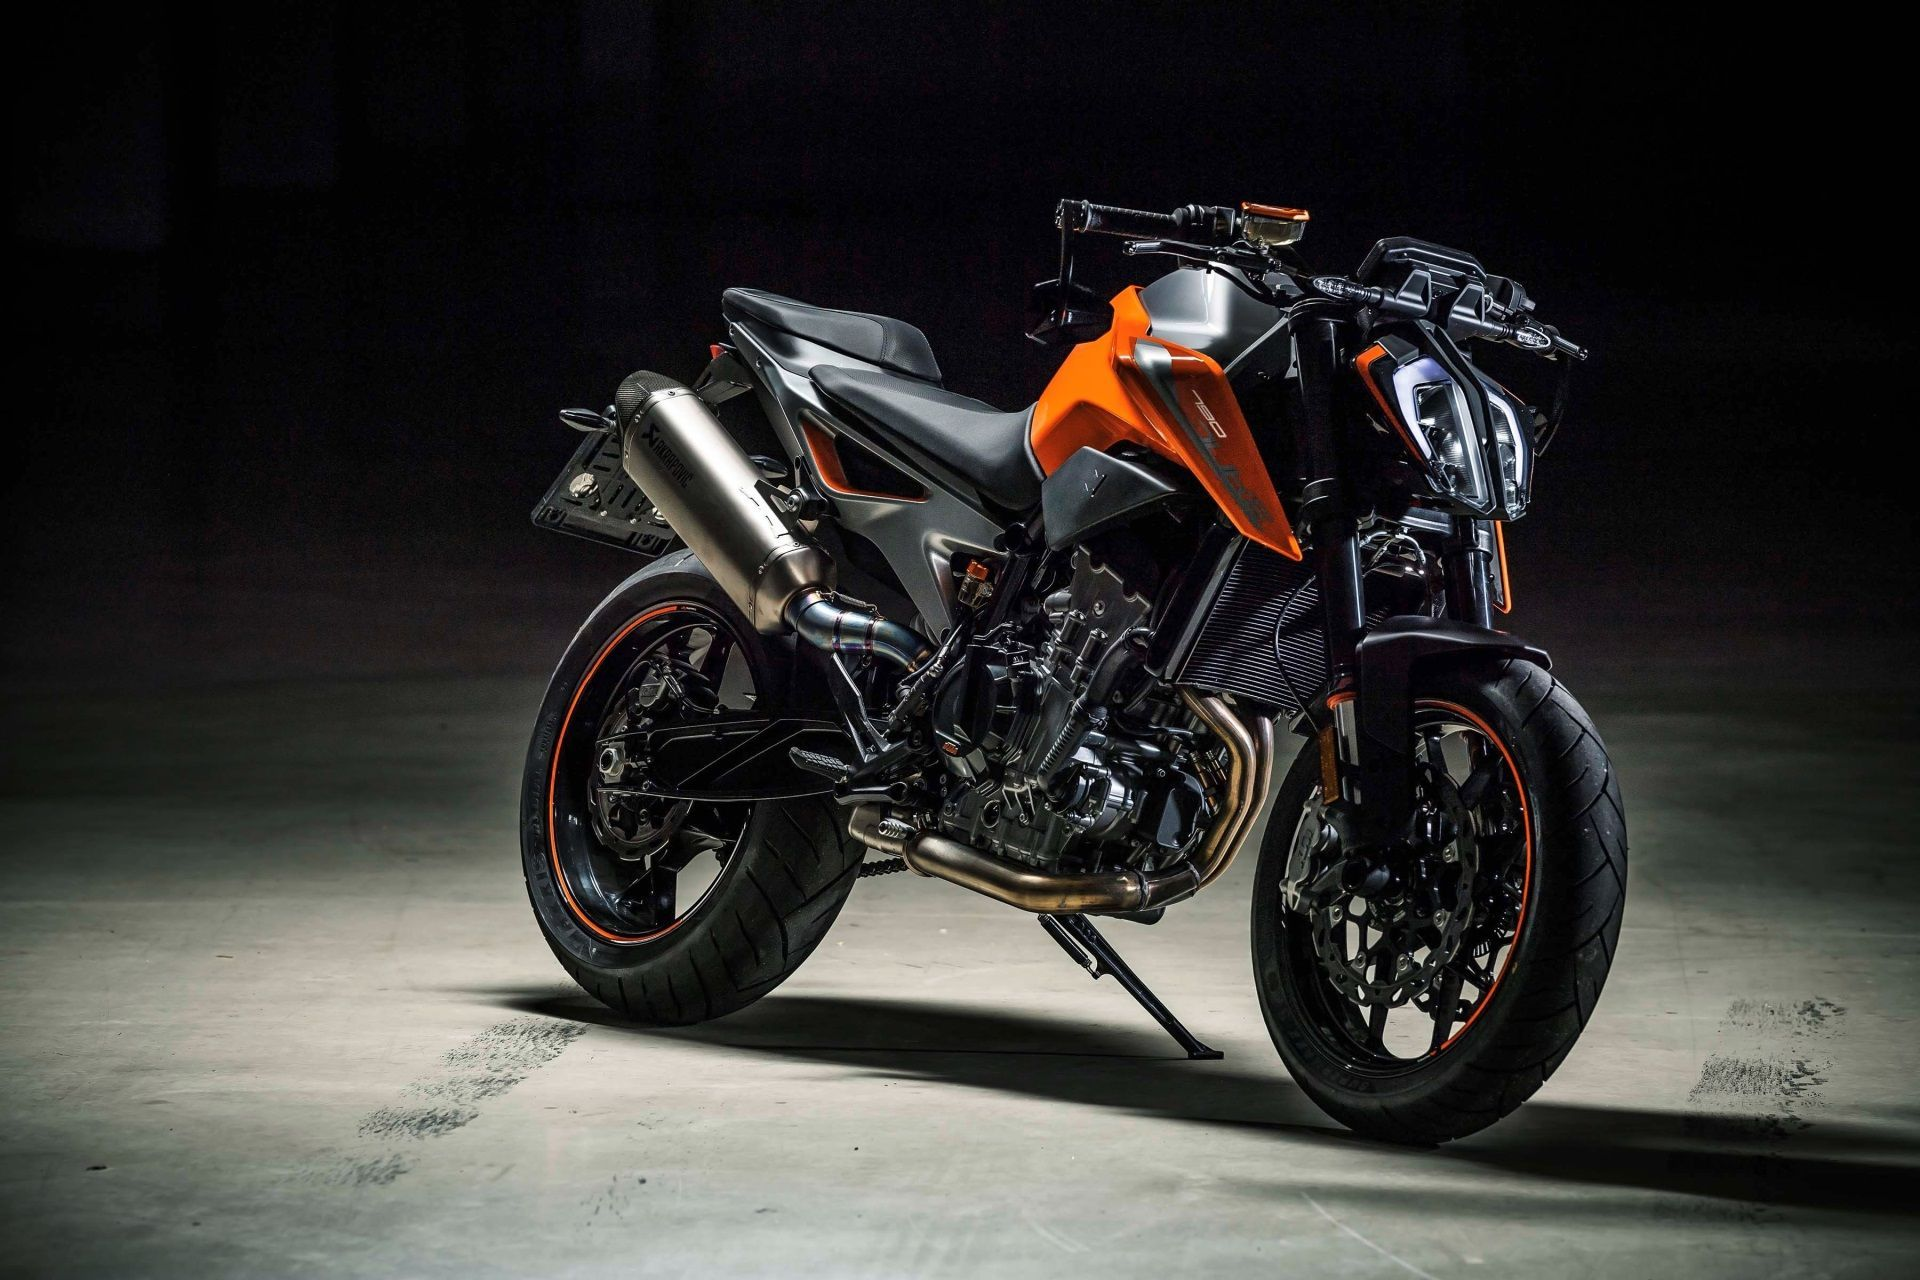 Ktm Duke Wallpapers Top Free Ktm Duke Backgrounds Wallpaperaccess